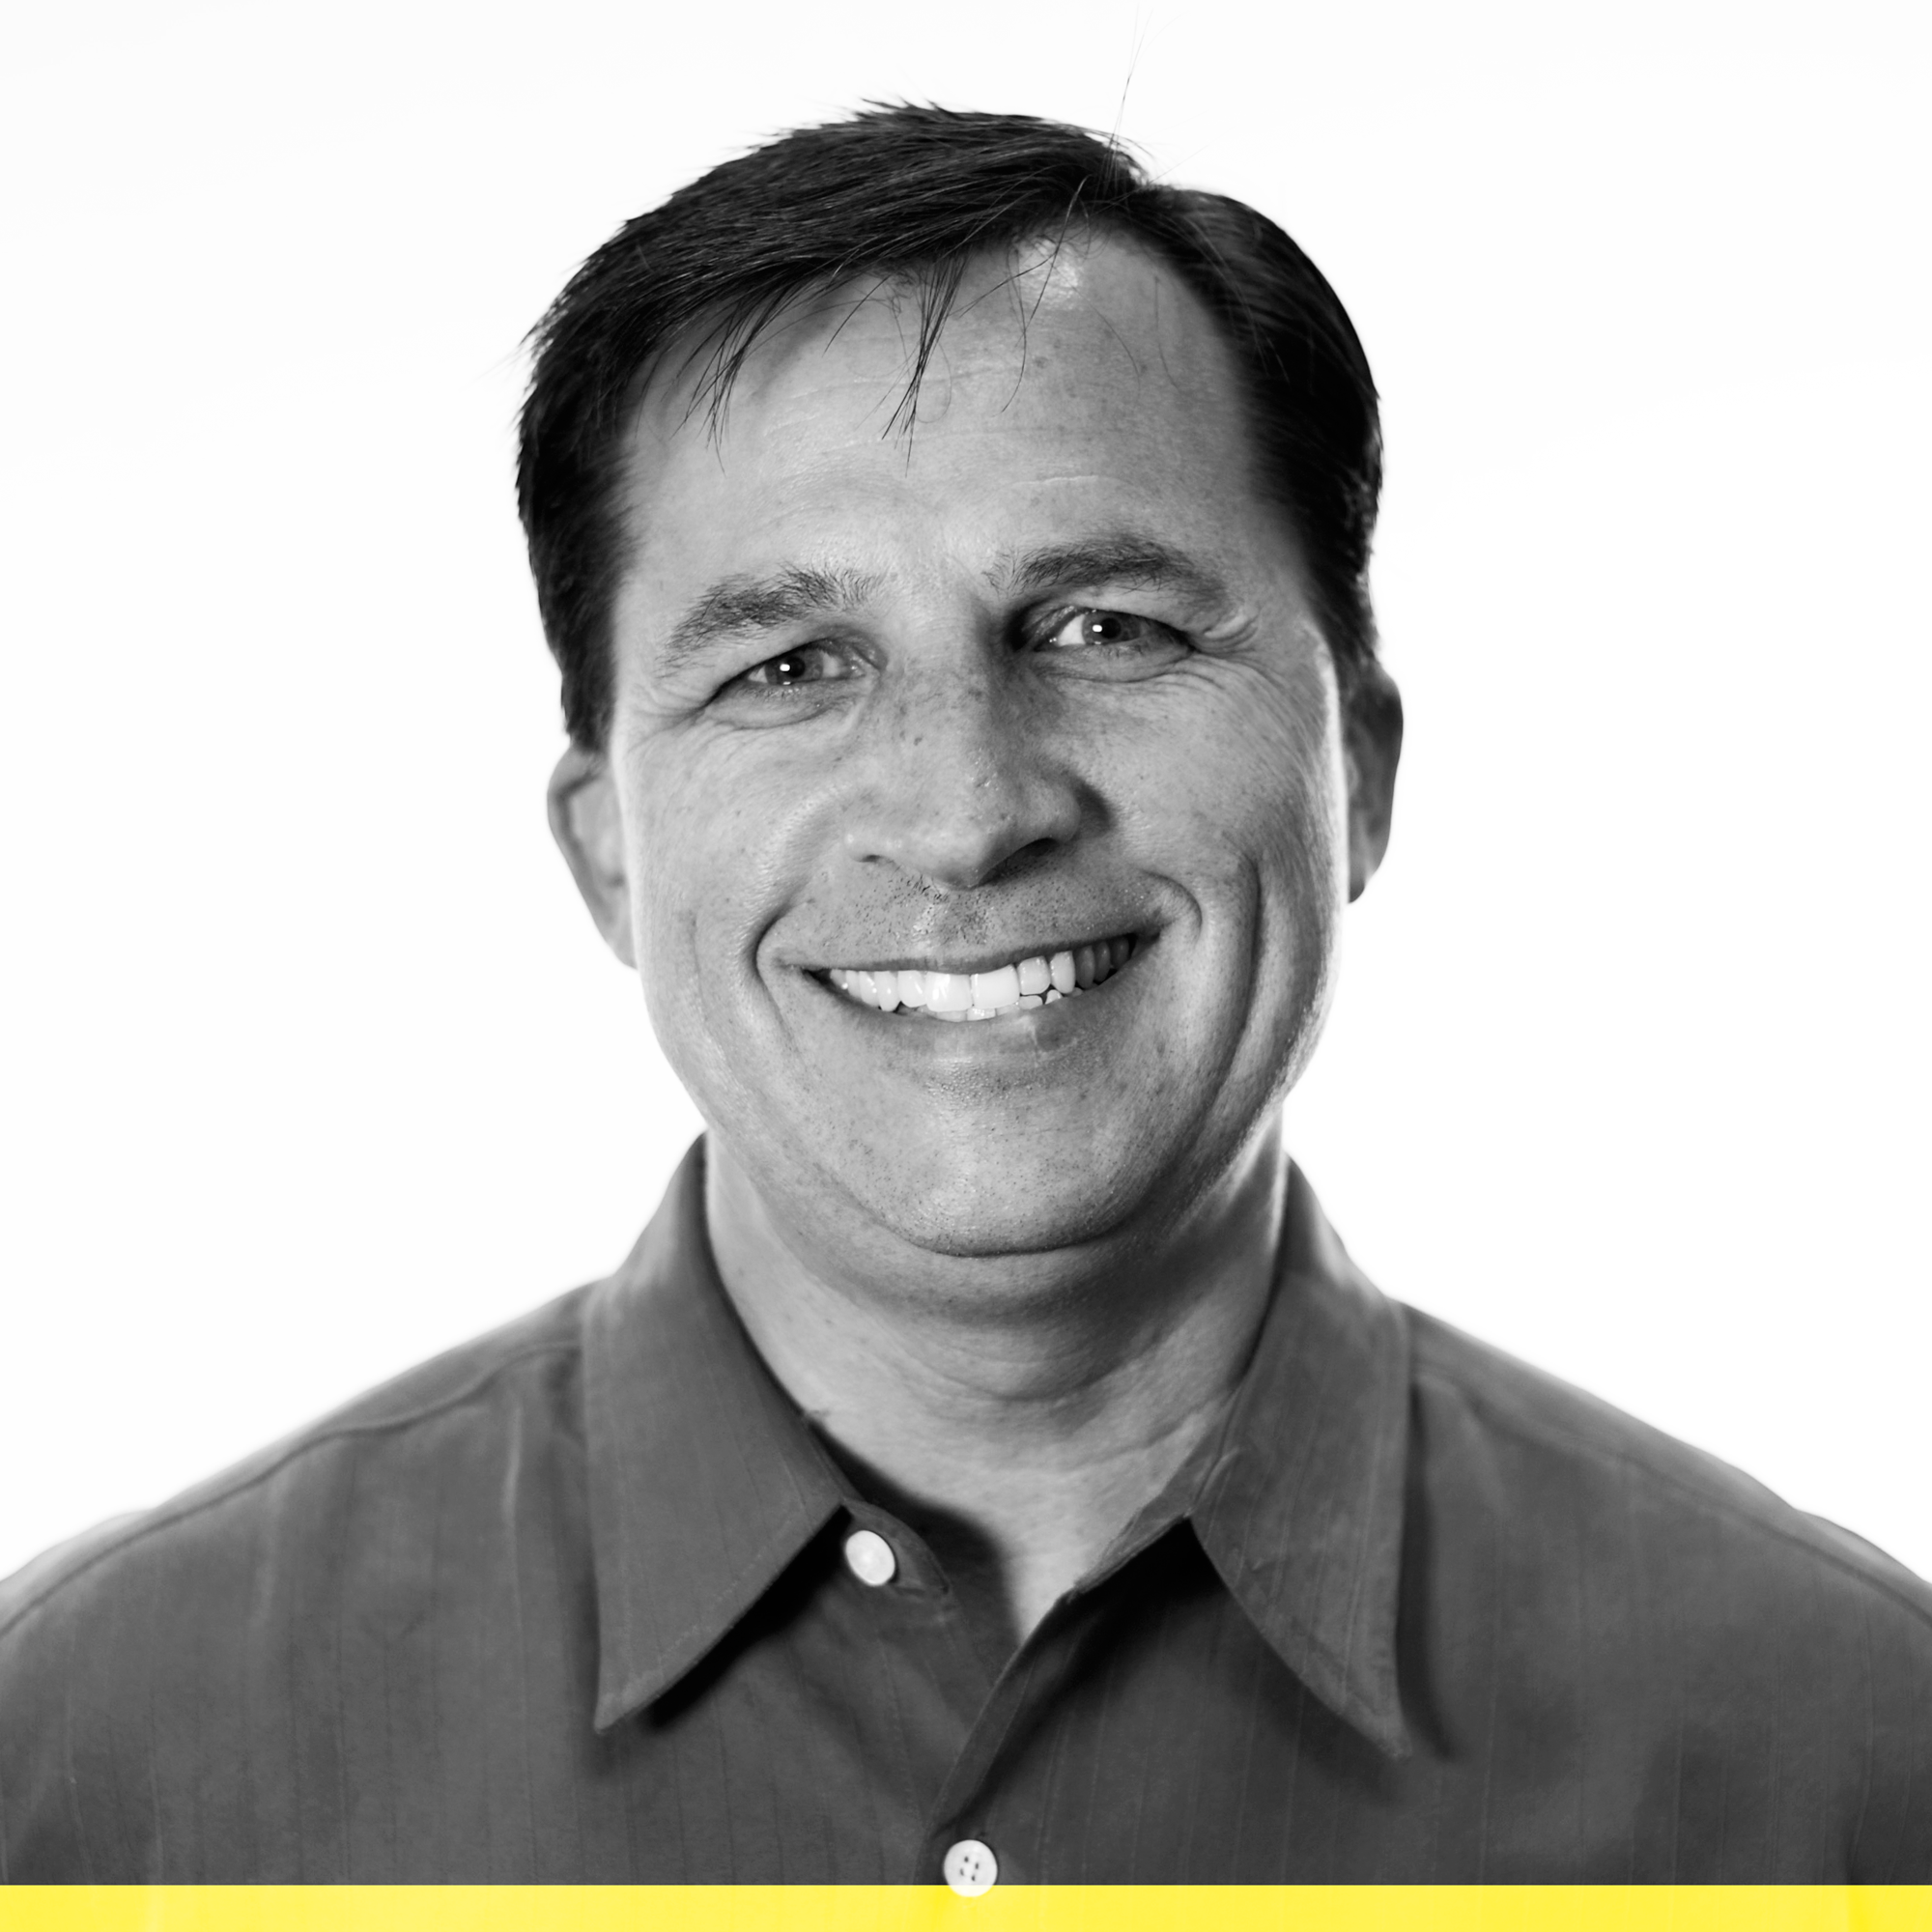 JOE SZALKIEWICZ | PRESIDENT  Joe leads Yellow Line Digital, a forward-thinking digital communications firm. Joe is a successful entrepreneur who has started, scaled, and exited a number of ventures. Joe has helped several diverse consumer and cause-driven brands find quantifiable returns for their digital communications investments. He lives in Carlsbad, California, with his family.